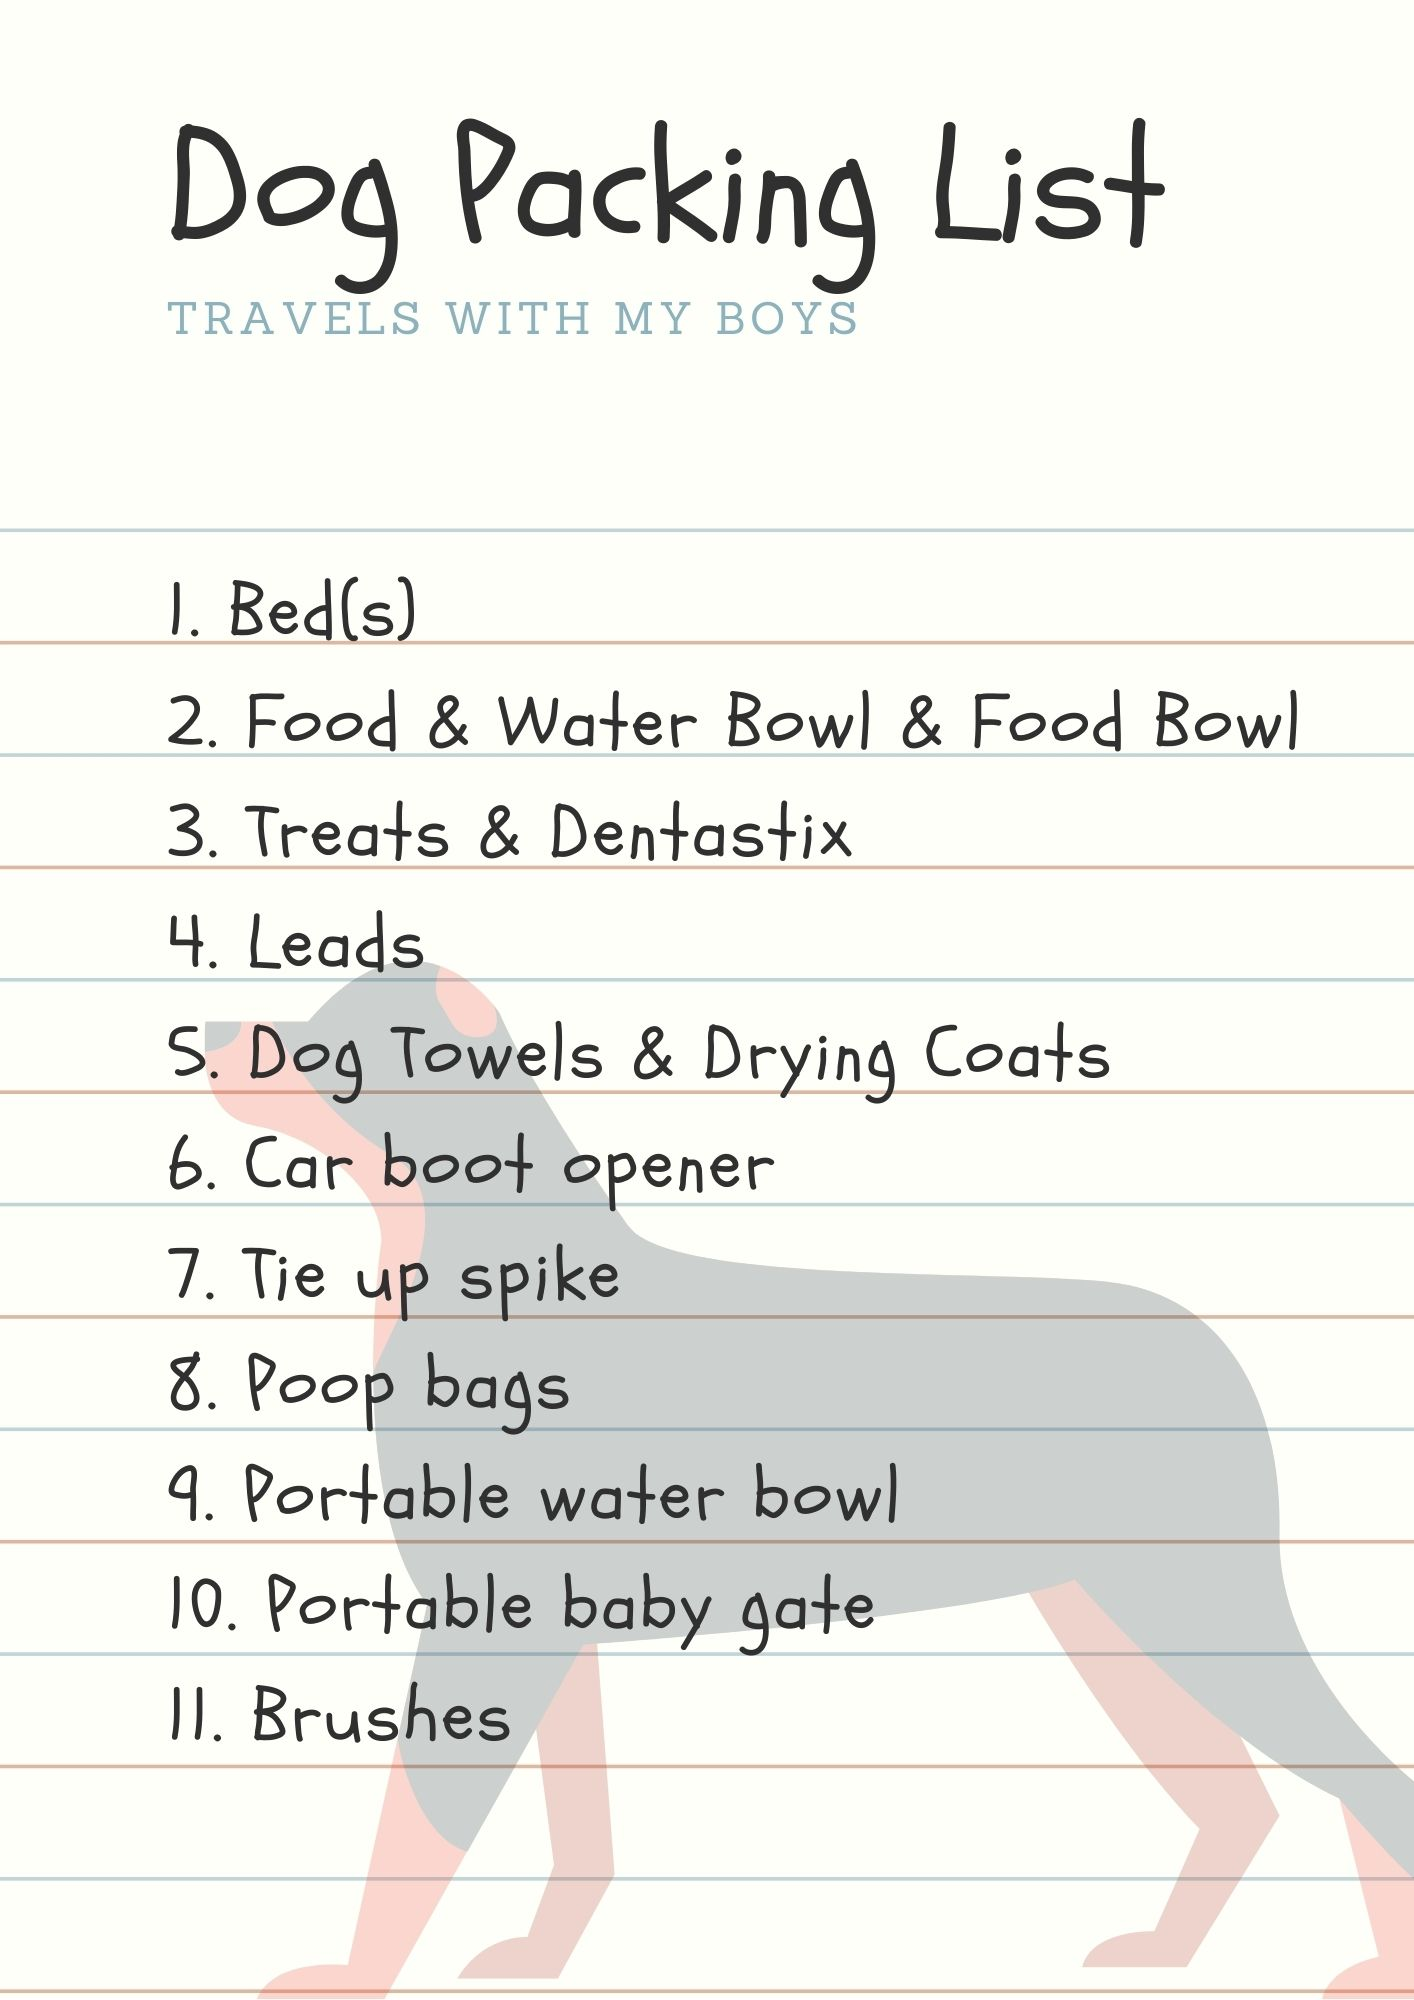 Dog Packing List - Free Download